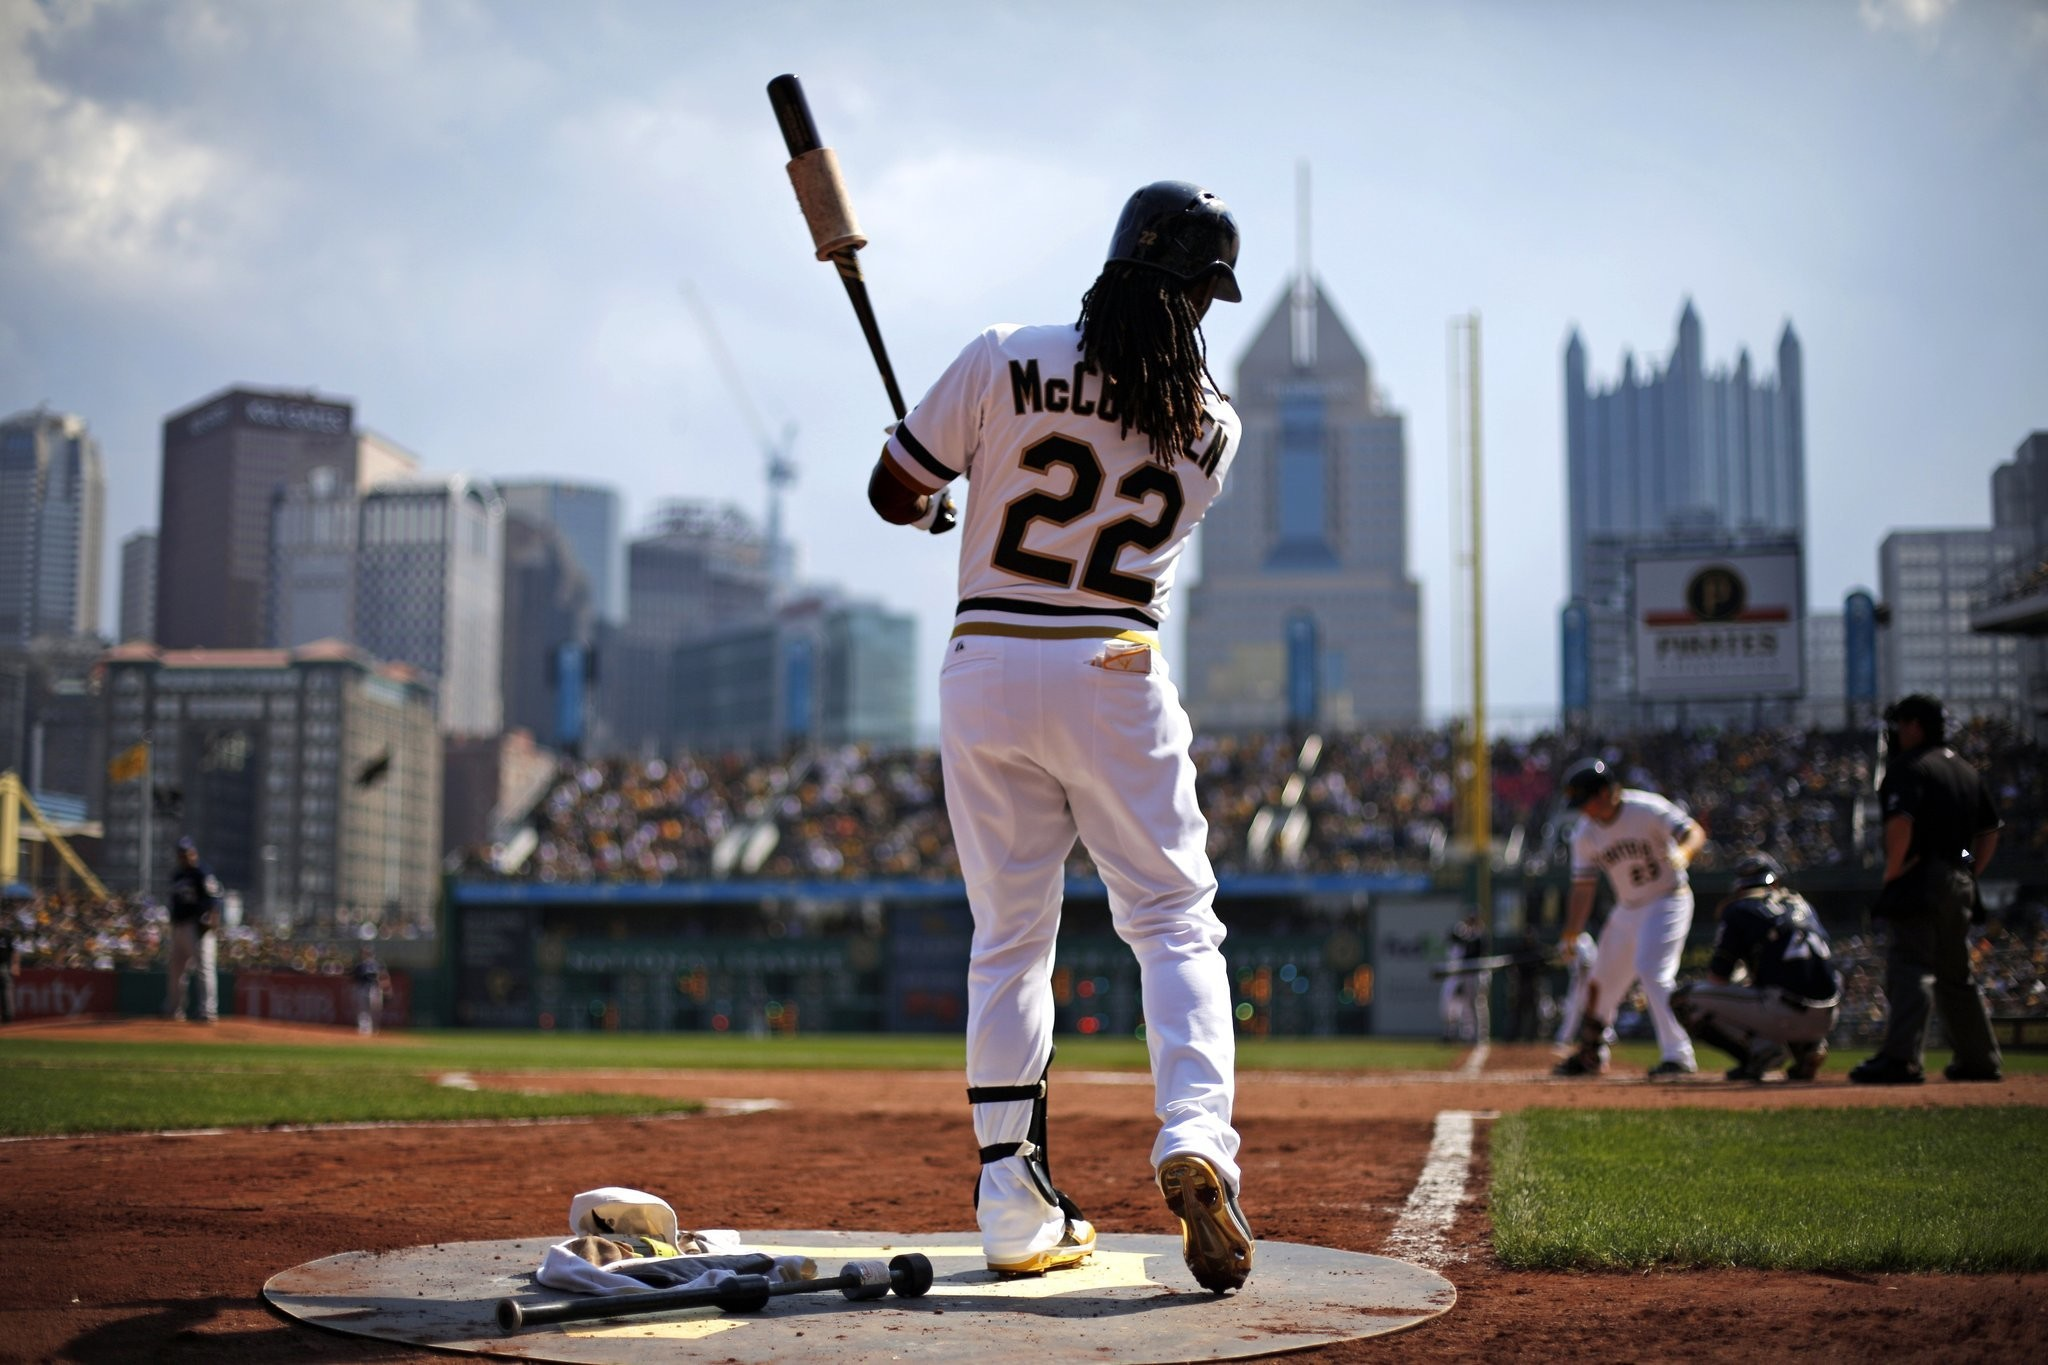 Pirates have built sustained success: How did they do it? – Chicago Tribune